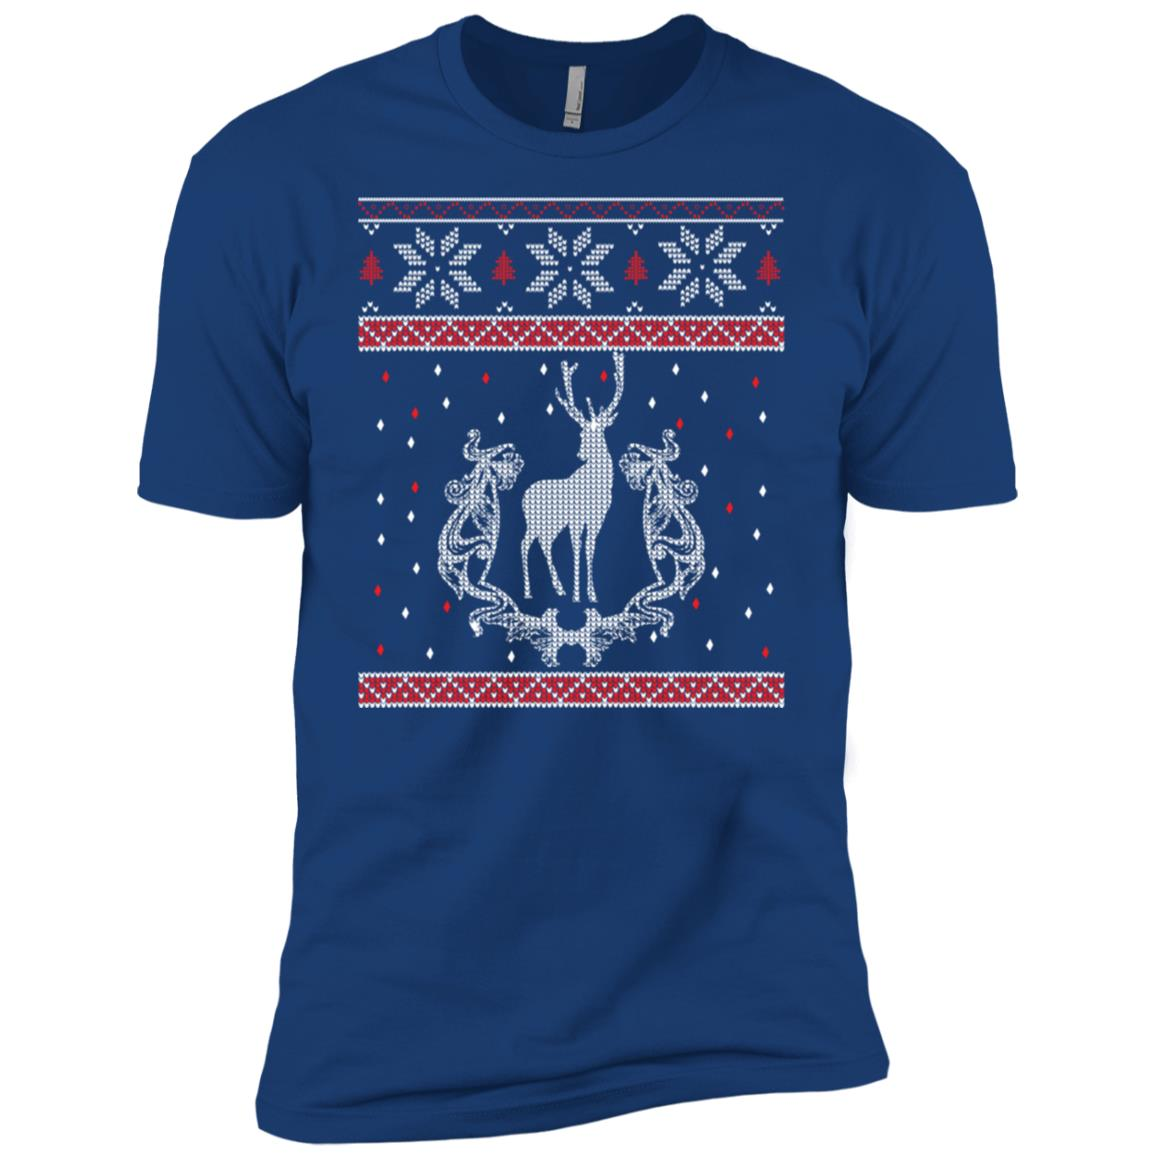 Deer Hunter Ugly Sweatshirt Hunter Christmas Gift Men Short Sleeve T-Shirt